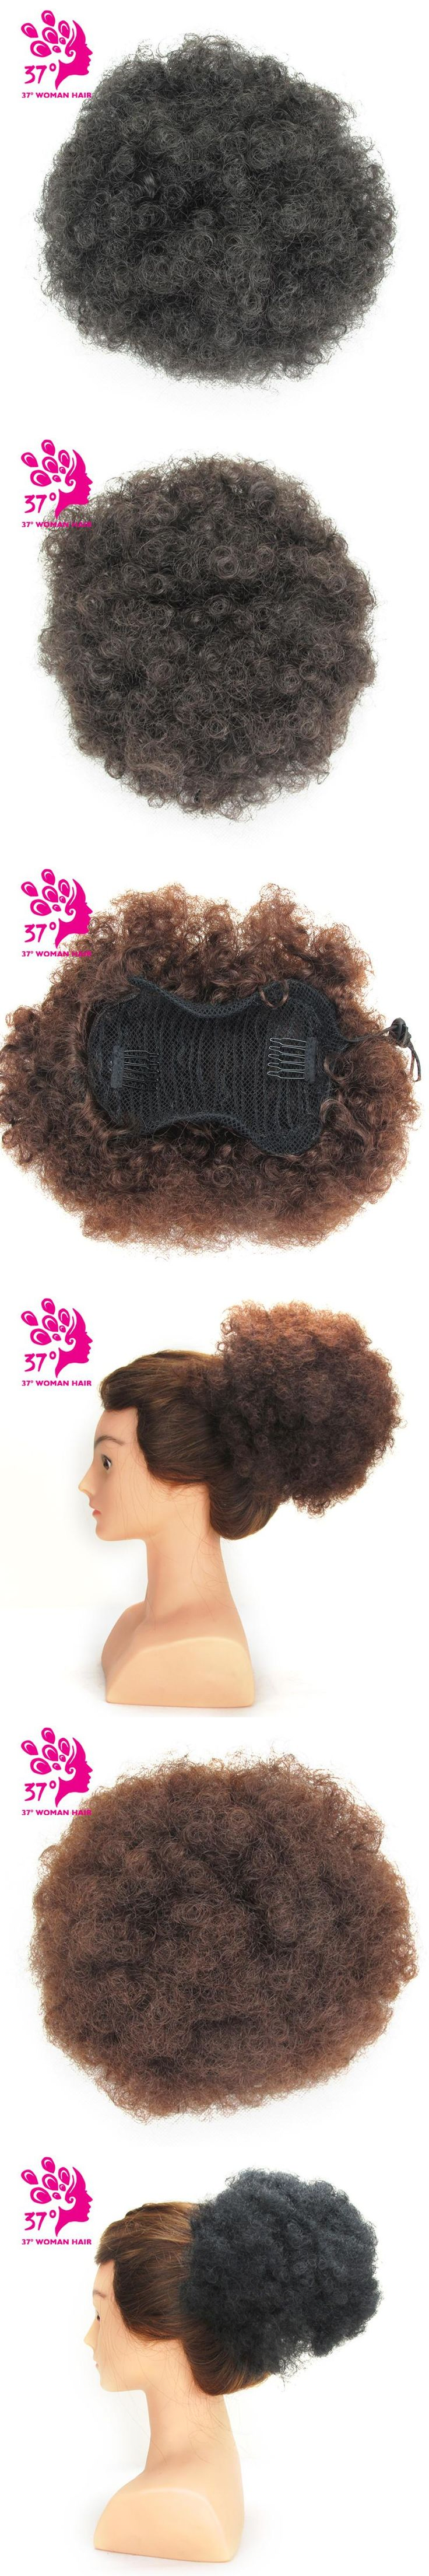 Dream Diana Synthetic hair Curly Chignon Bun Hairpiece Clip-In Natural Color Low Temperature Fiber